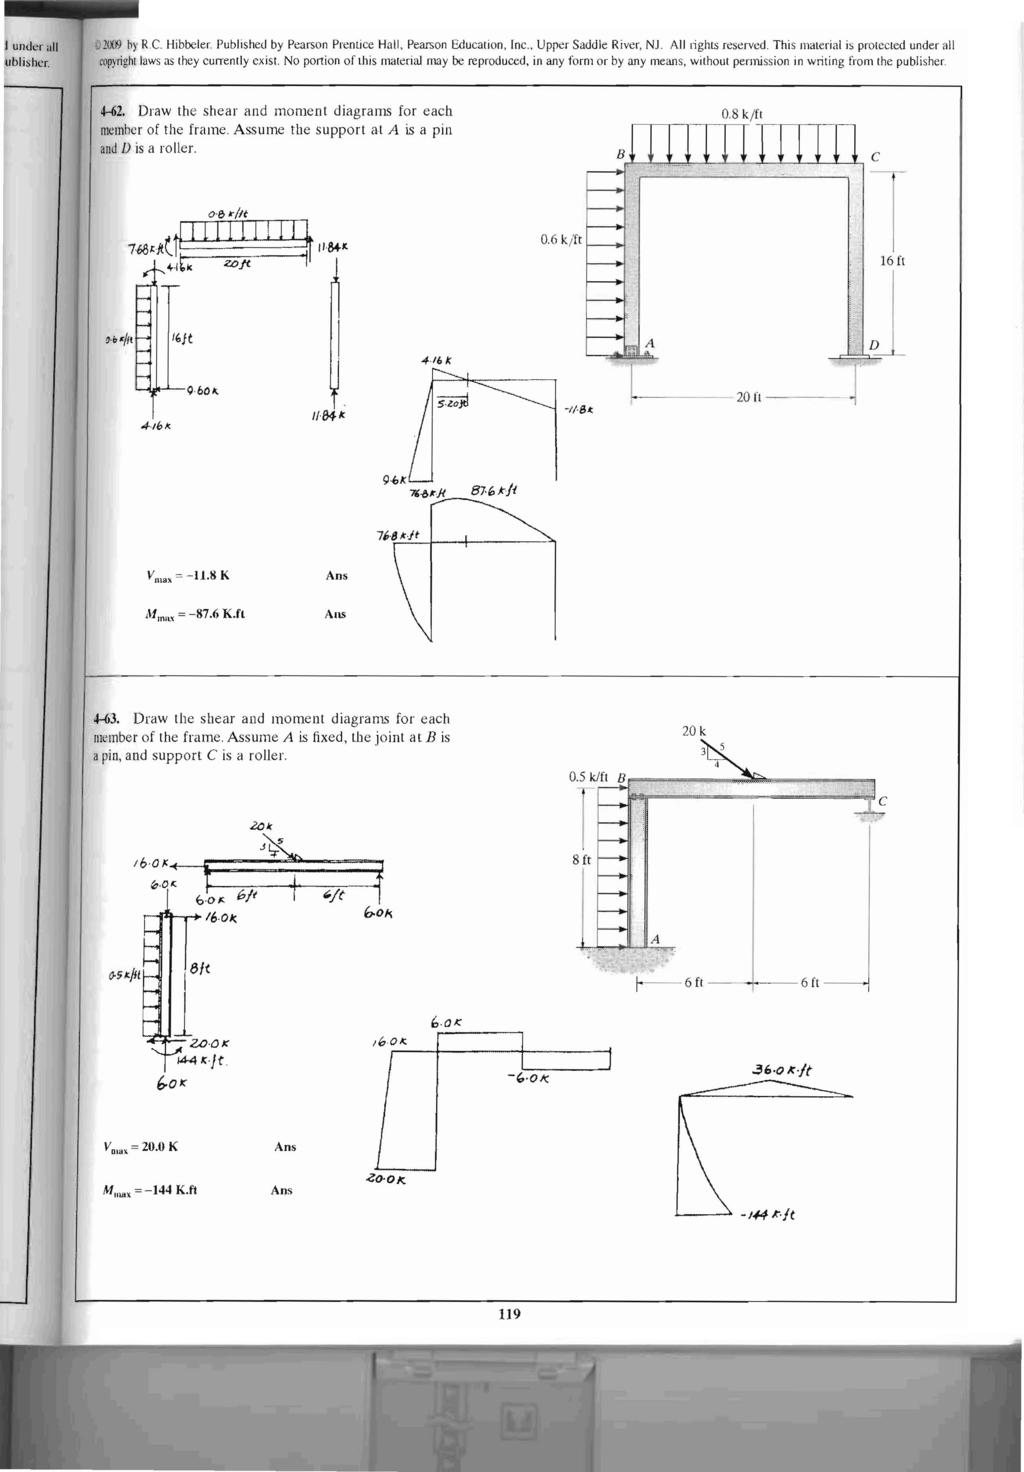 A 10 33 Statically Indeurminare To The 1 0 Ans Pdf Drawing Moment Diagram Underall Ublishcr Jl009 By Re Hibbeler Published Pearson Prentice Hall